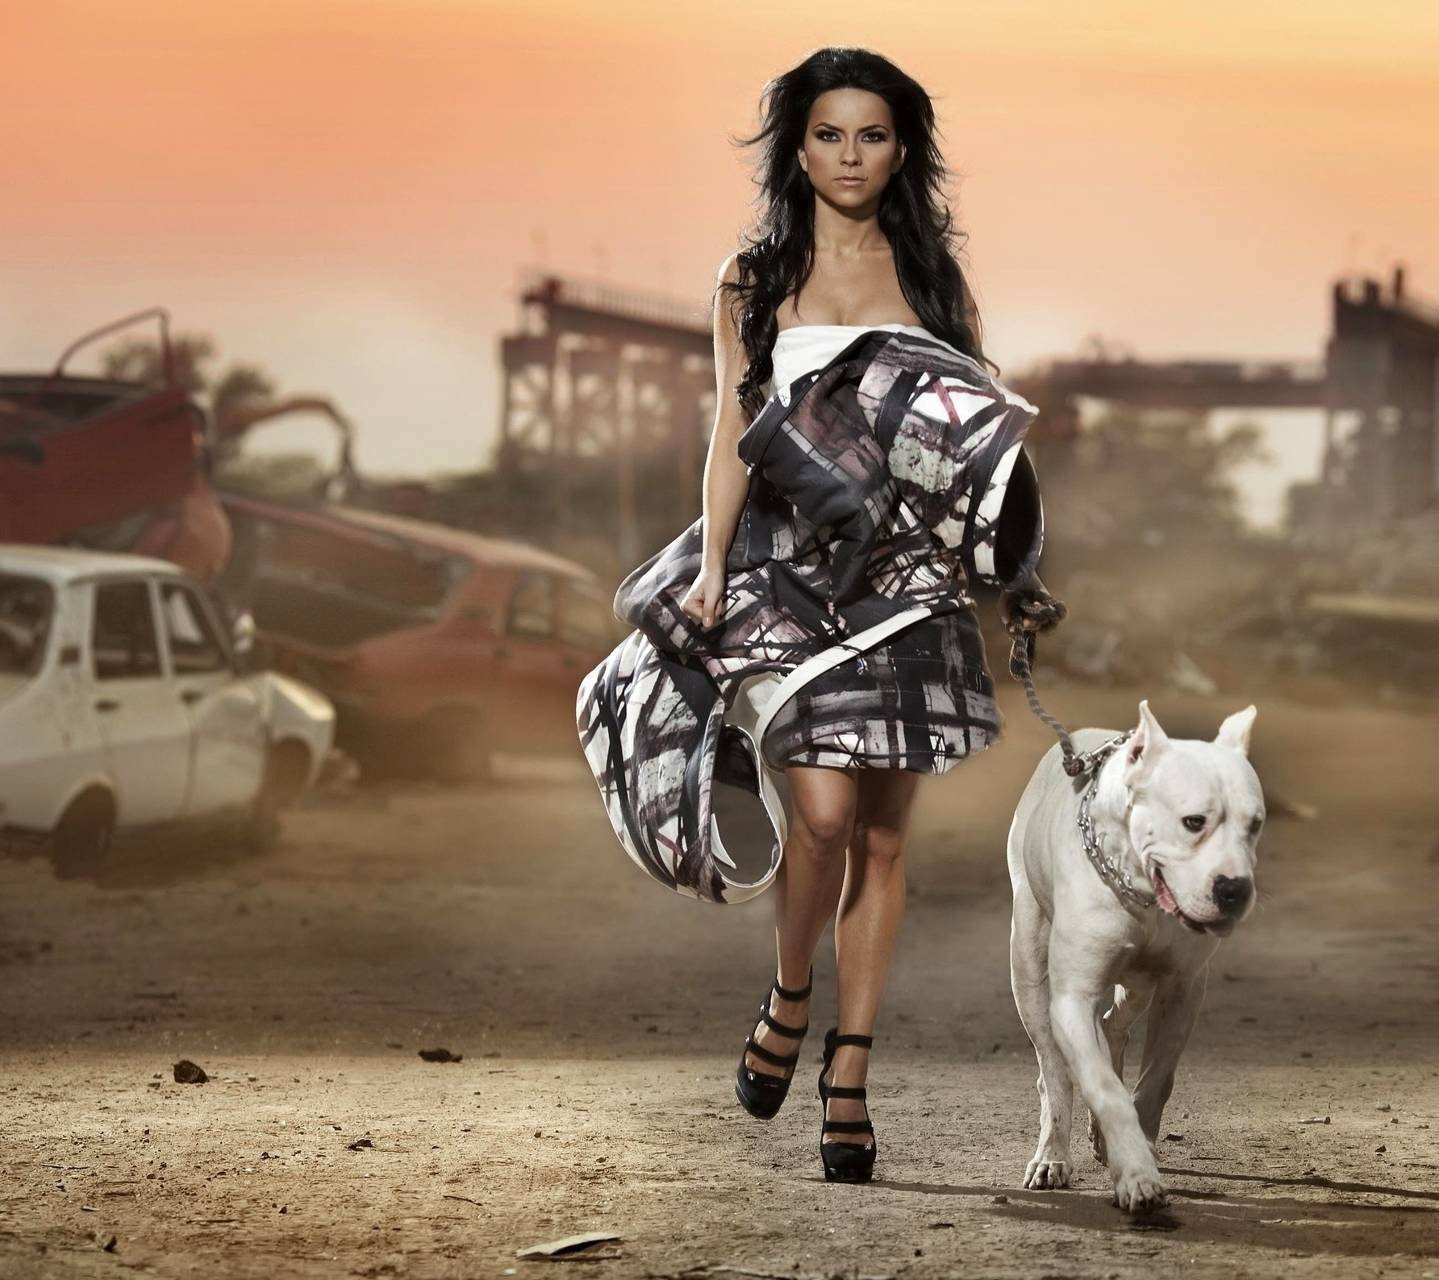 Inna With Dog